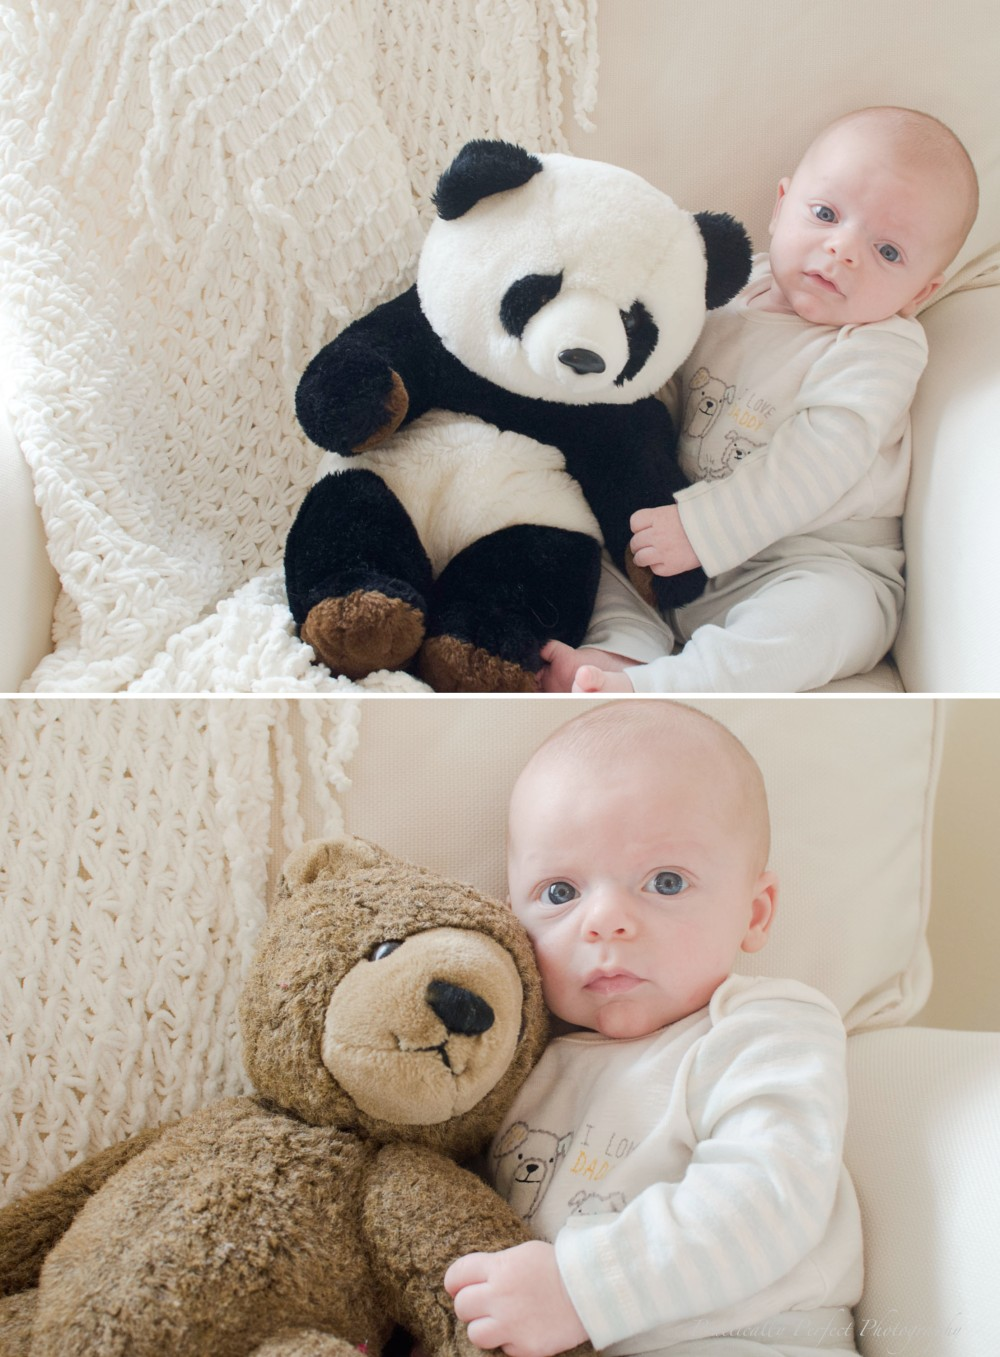 Top: Mom's old teddy Bottom: Dad's old teddy